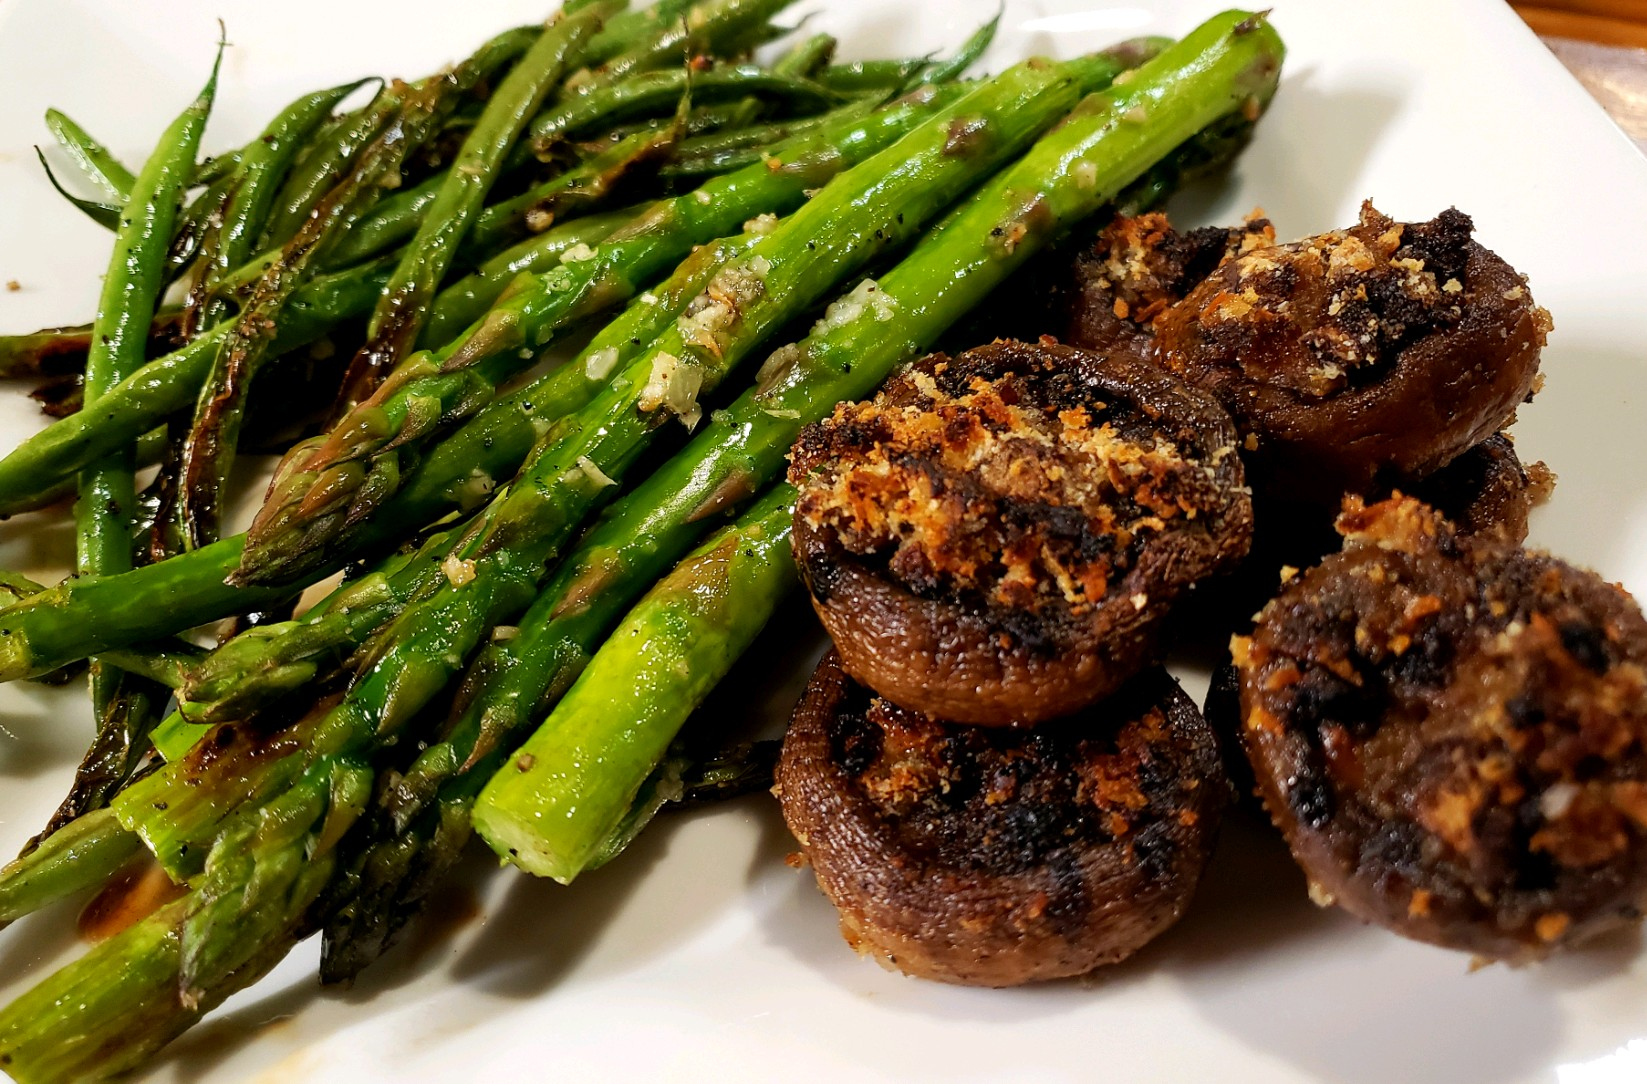 Green Beans, Asp & Stuffed Mushrooms